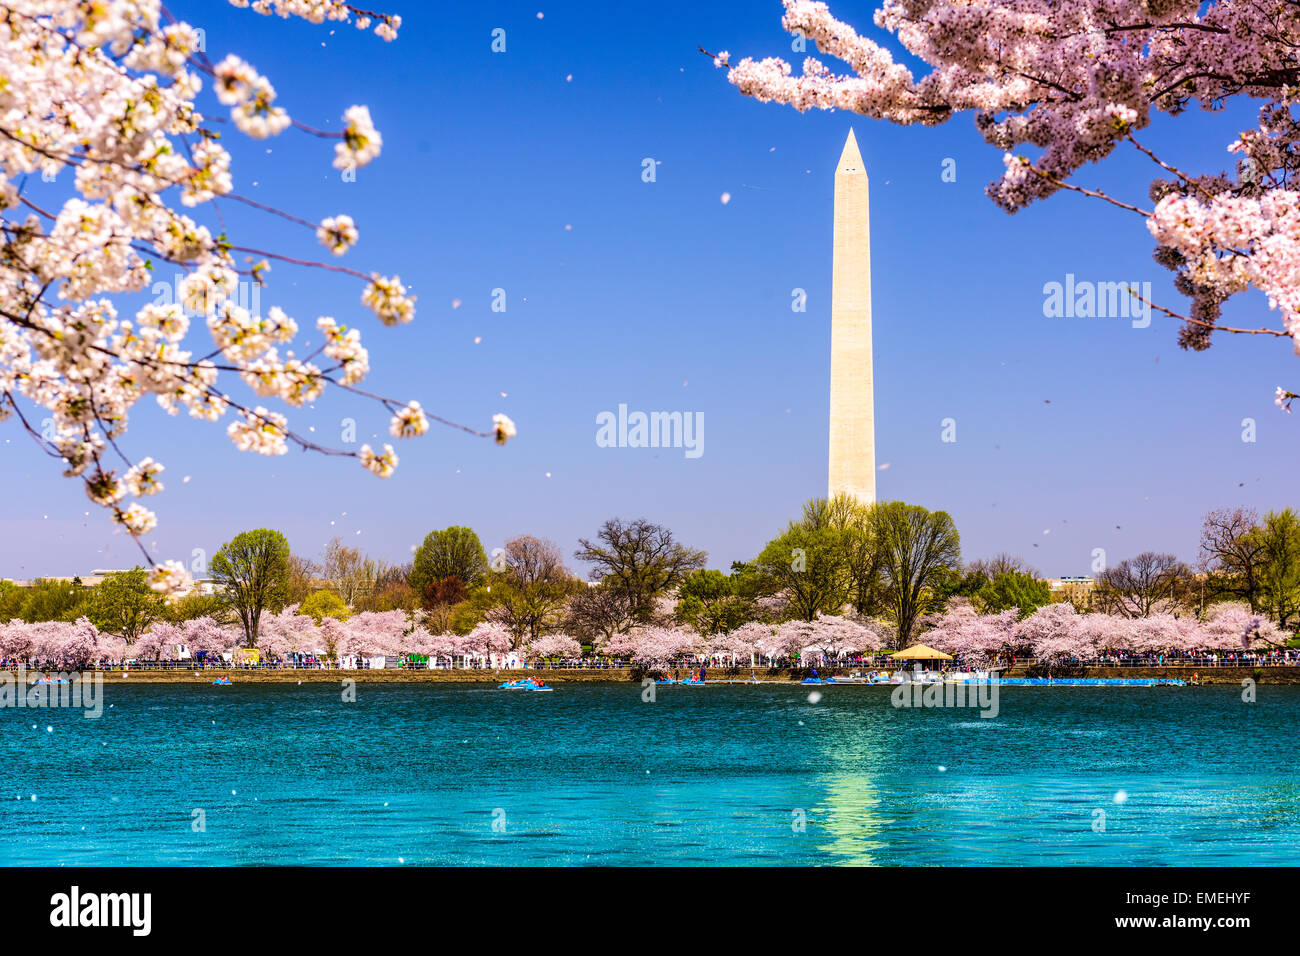 Washington, D.C. Washington Monument during spring. - Stock Image